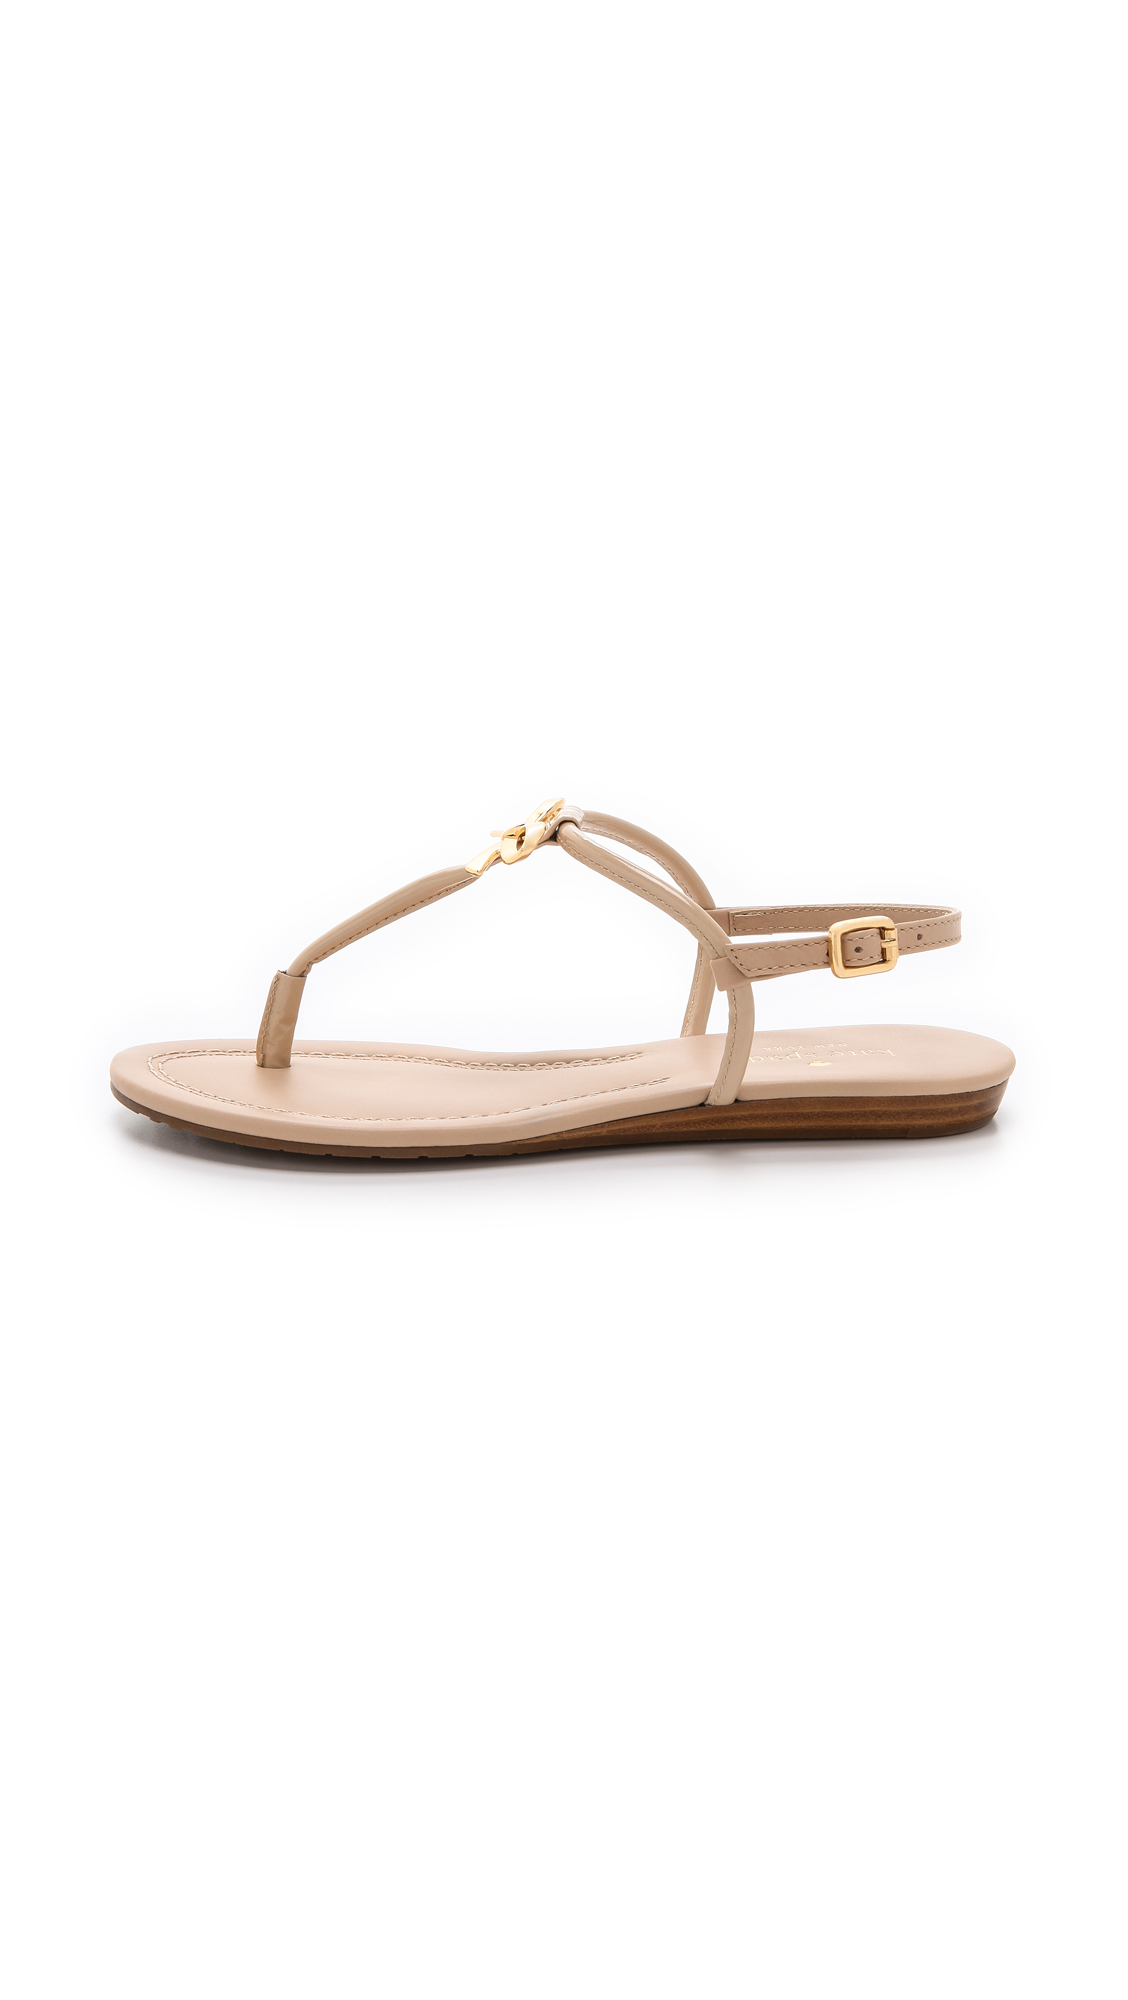 c6cb374b0ea Kate Spade Tracie Bow Thong Sandals in Natural - Lyst